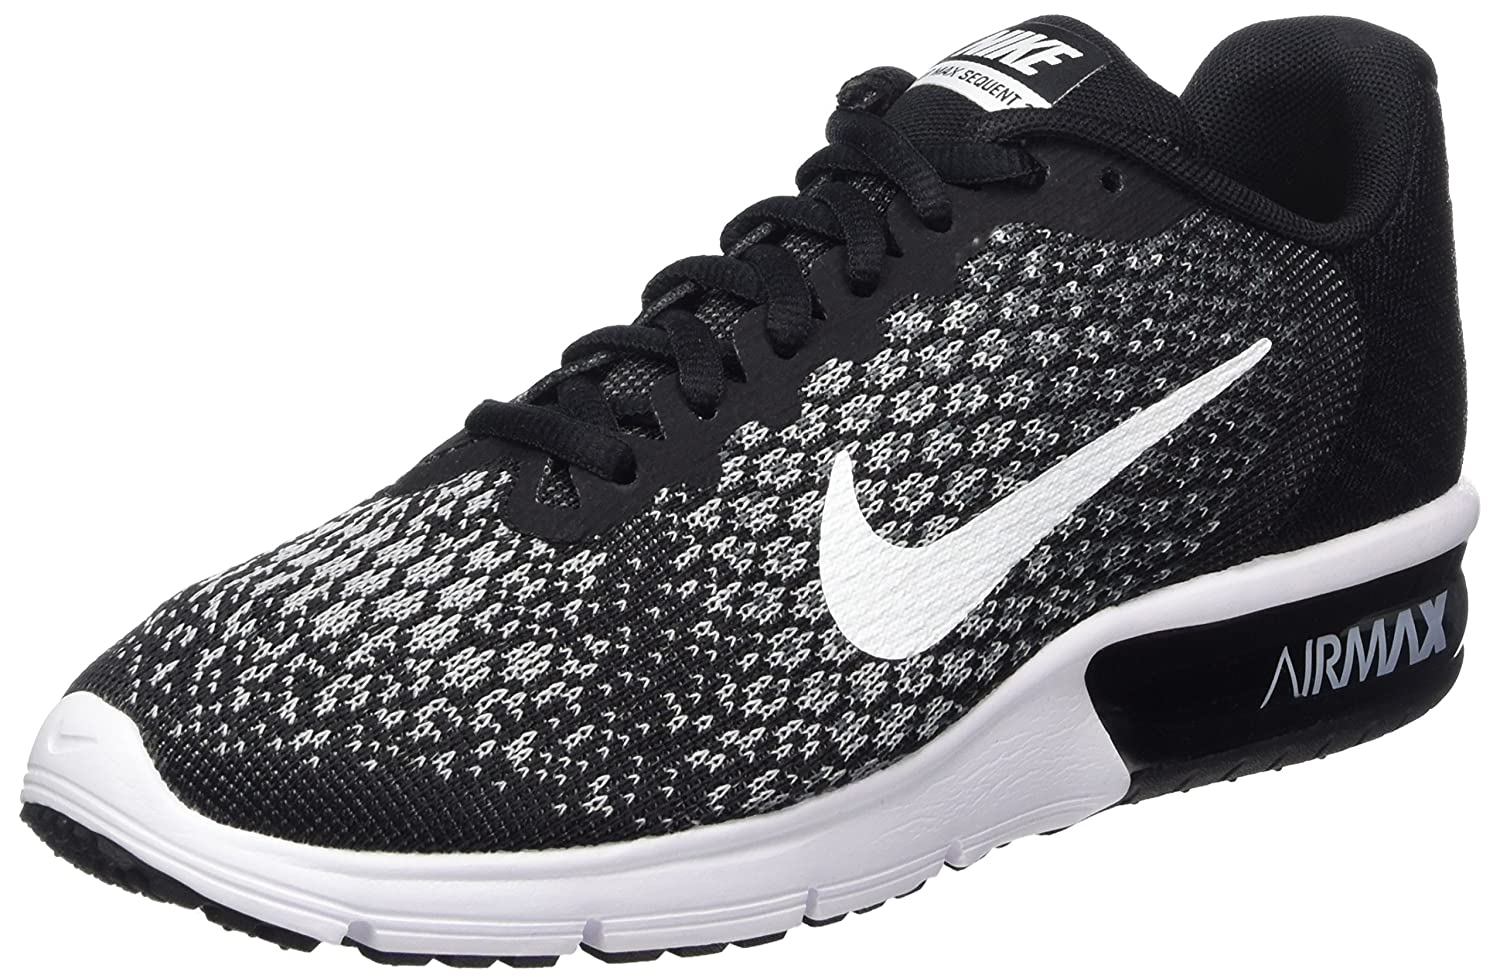 online store 29fa4 5a90b Amazon.com   Nike Women s Air Max Sequent Running Shoes Black White-Dark  Grey-Wolf Grey 7.5   Road Running